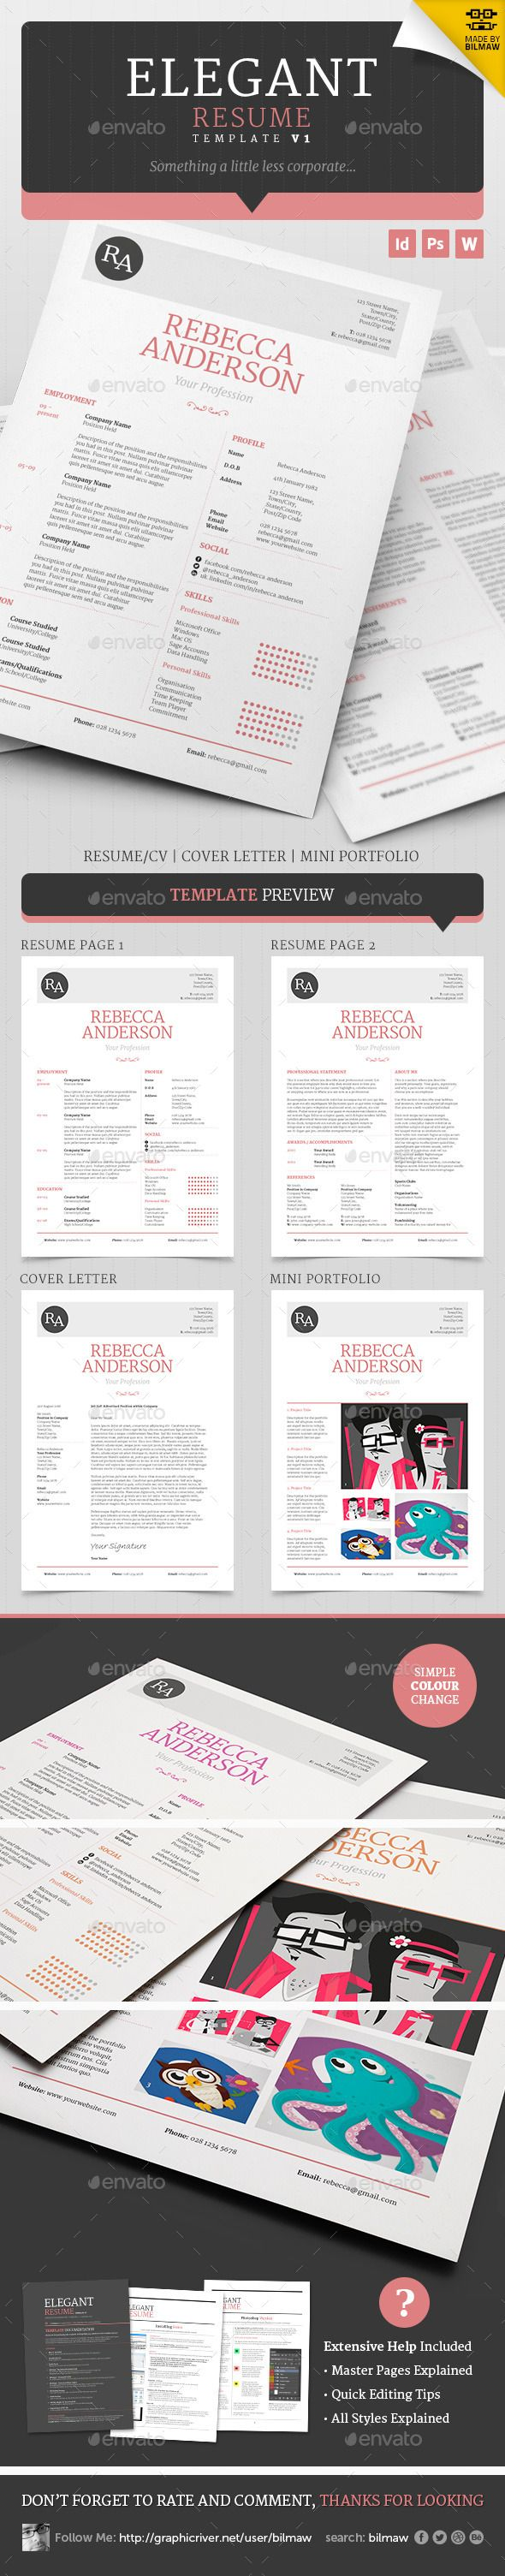 cv and covering letter%0A Elegant   Page Resume   CV  u     Cover letter  Easy to edit template  Word